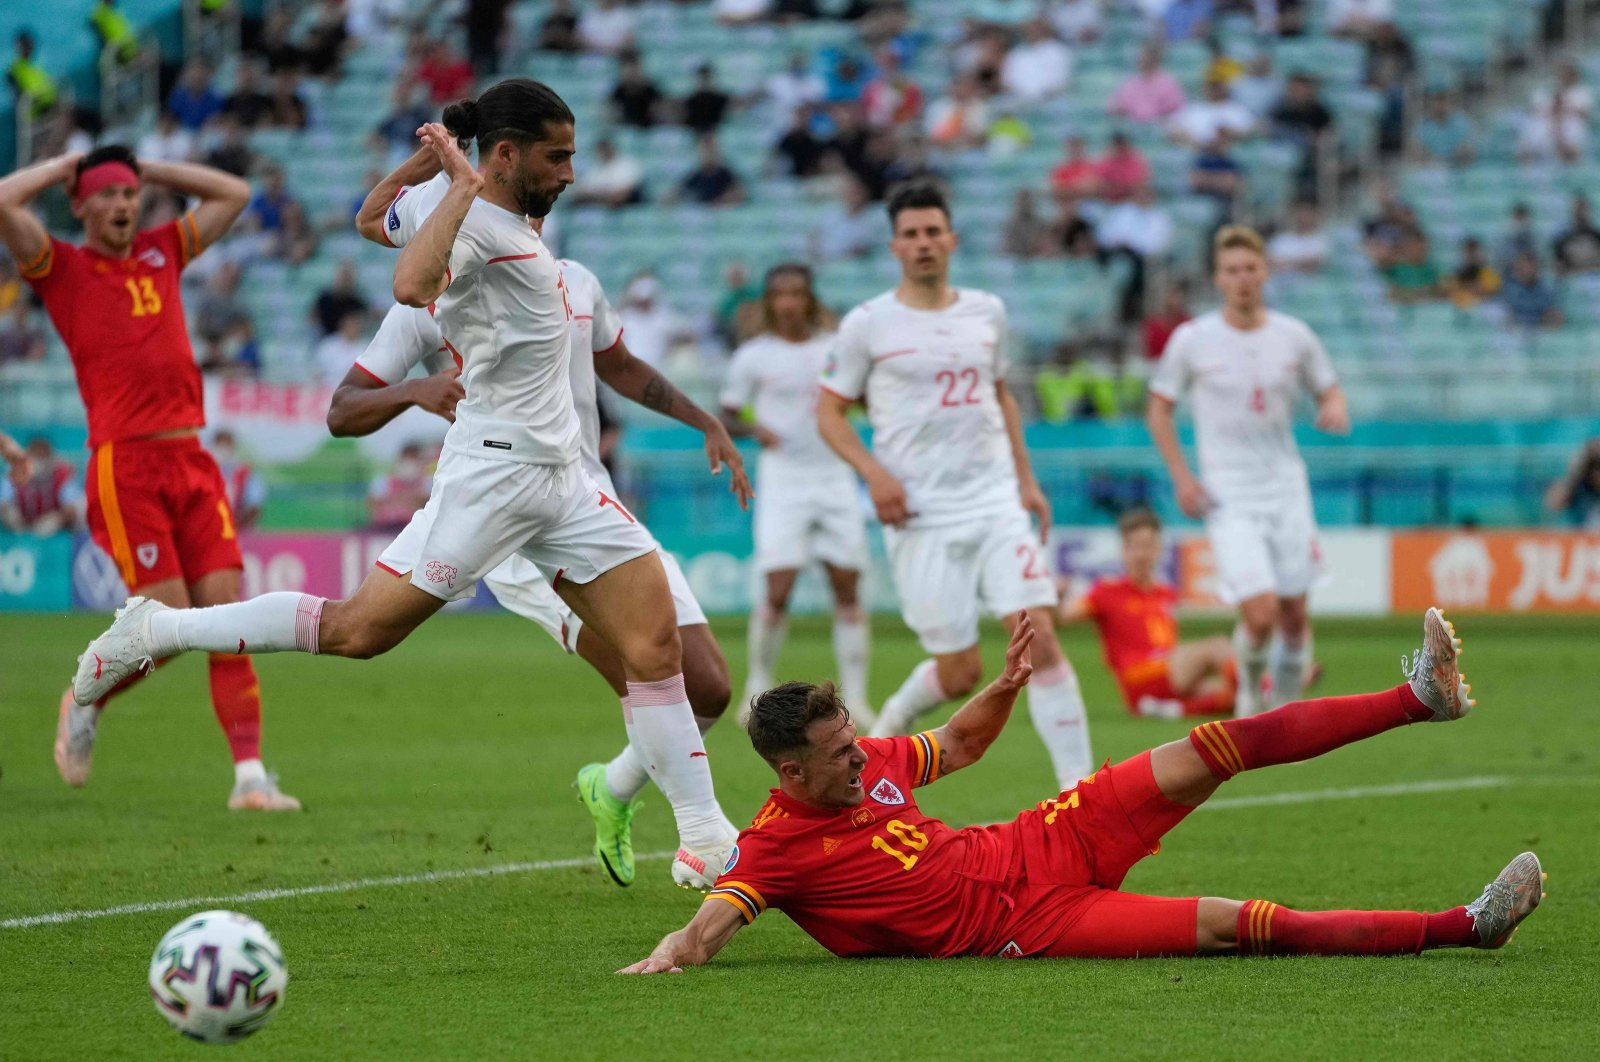 Switzerland's defender Ricardo Rodriguez (2nd L) tries to prevent a foul call after Wales' midfielder Aaron Ramsey (#10) lands on the ground during the UEFA EURO 2020 Group A football match between Wales and Switzerland at Olympic Stadium in Baku, Azerbaijan, June 12, 2021. (AFP Photo)